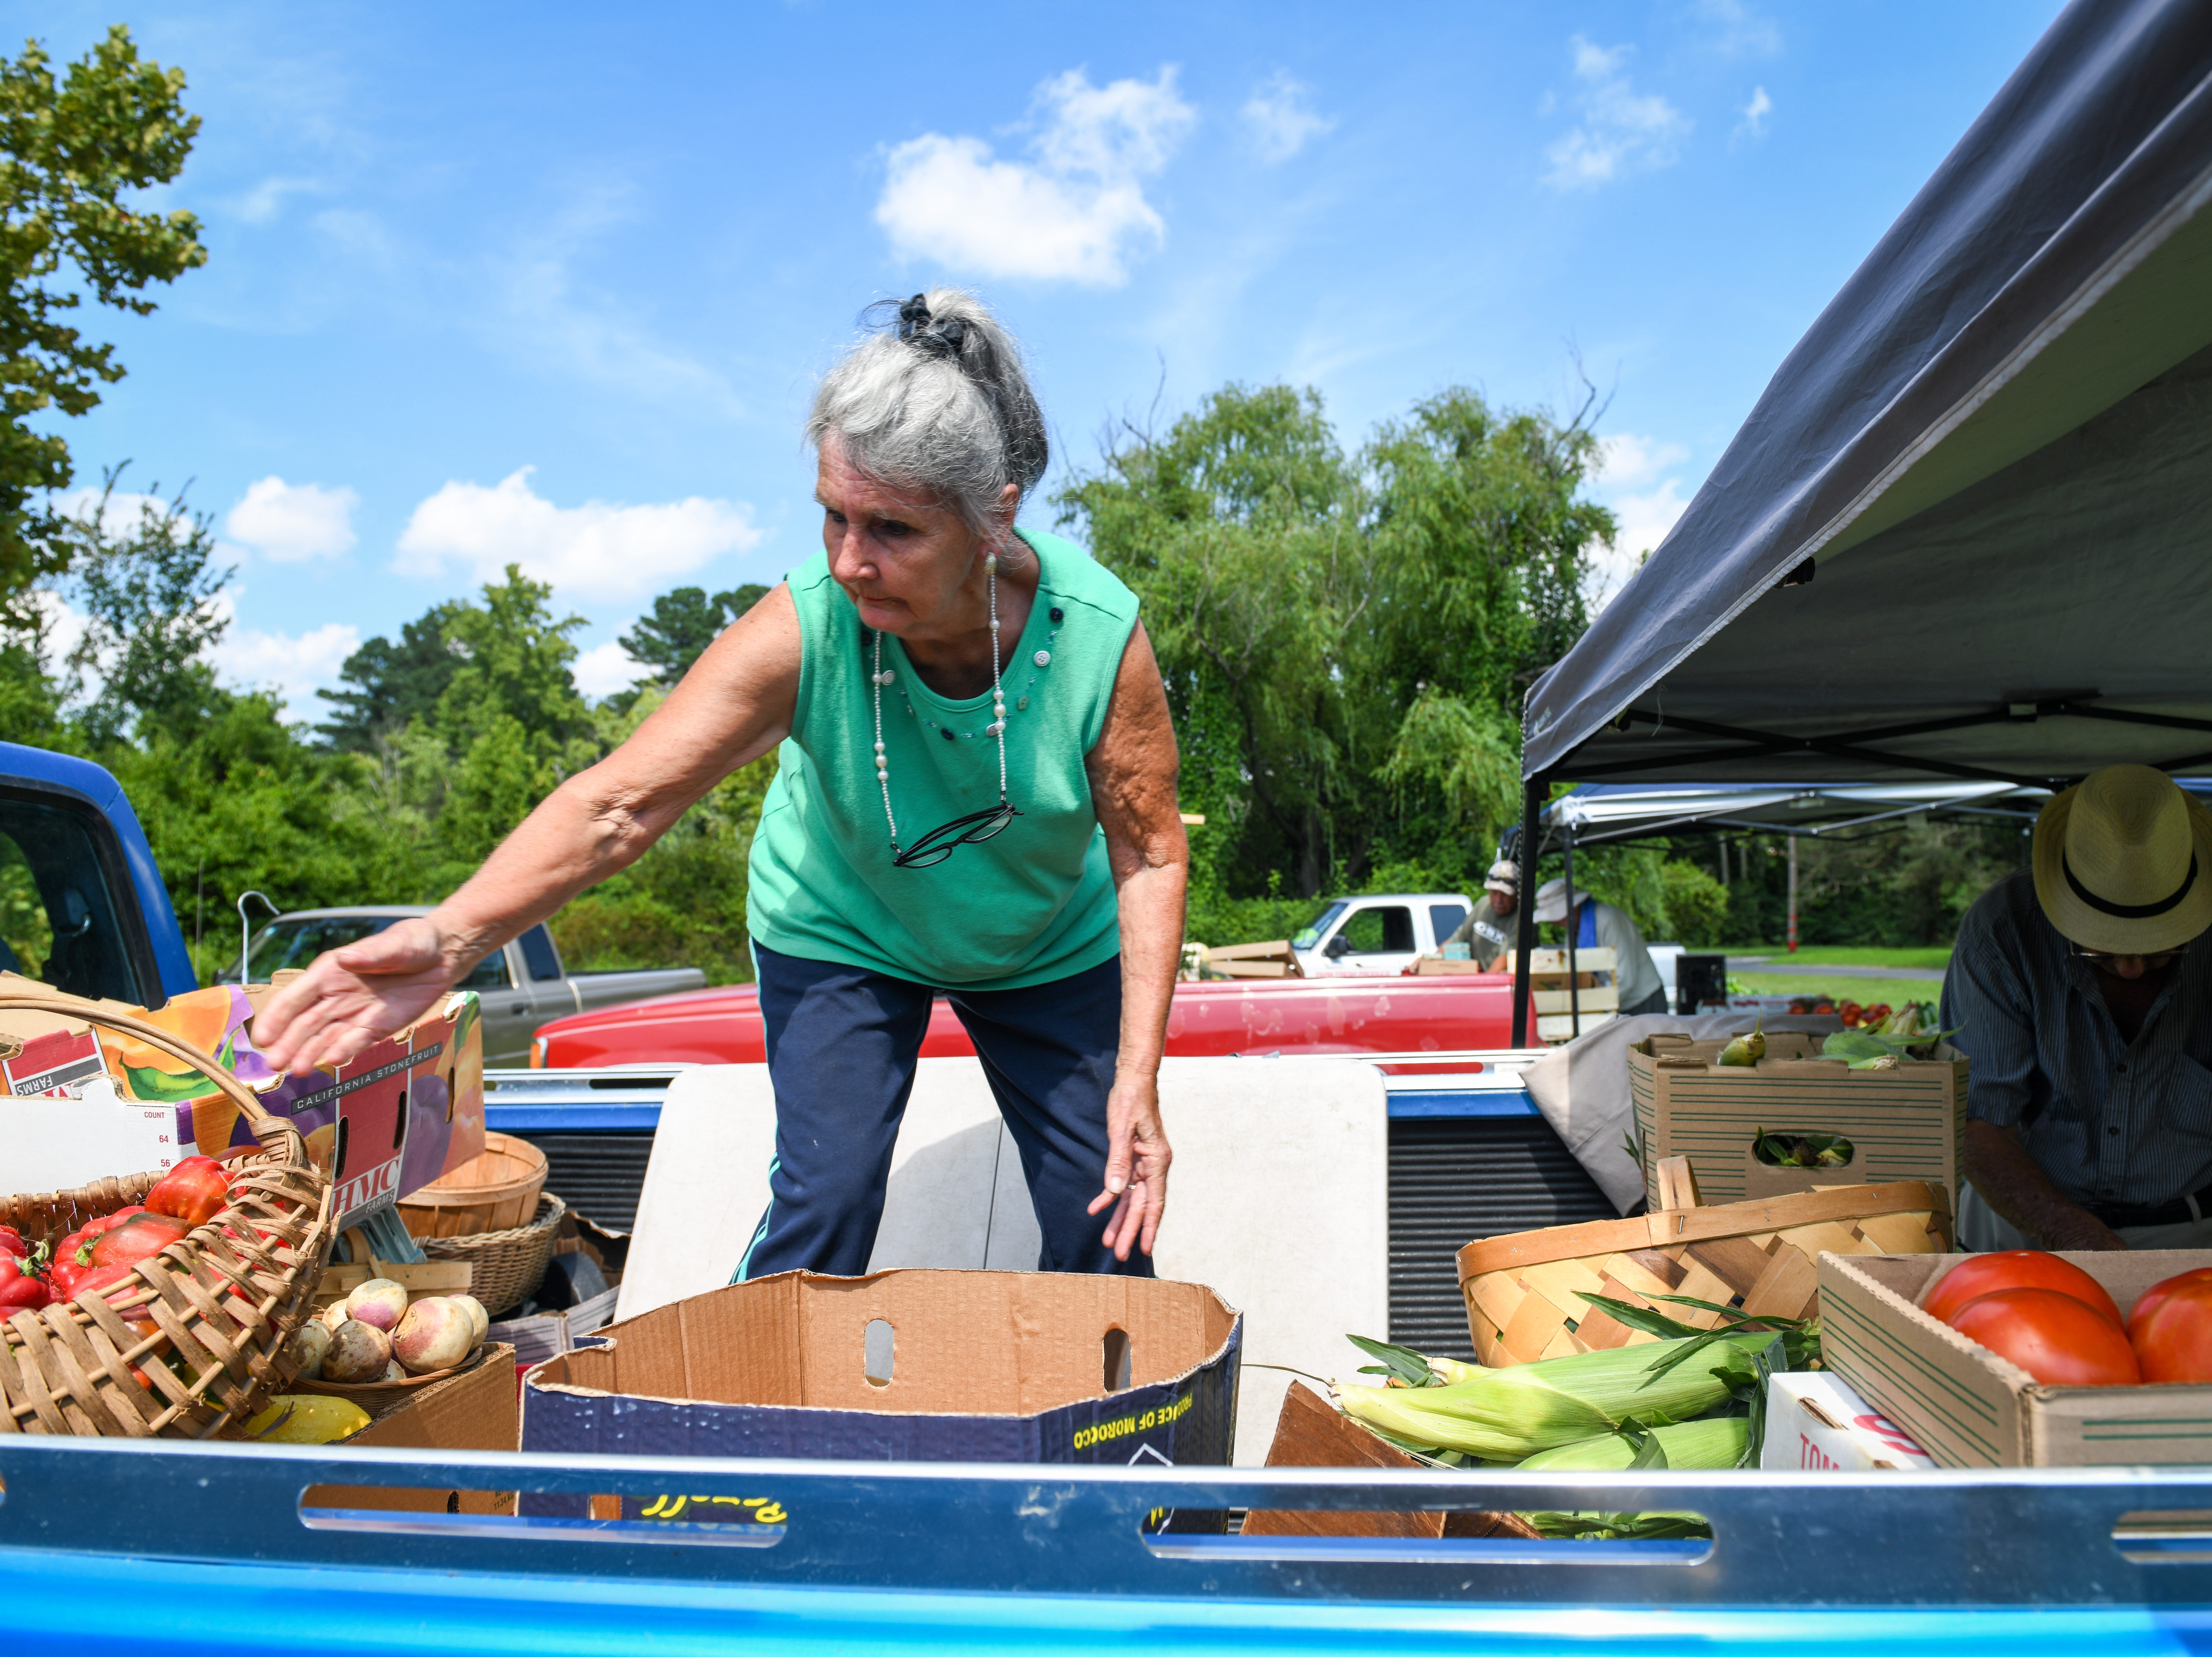 Katie Turner pulls produce out of at truck to sell at the Princess Anne farmers market on August 9.